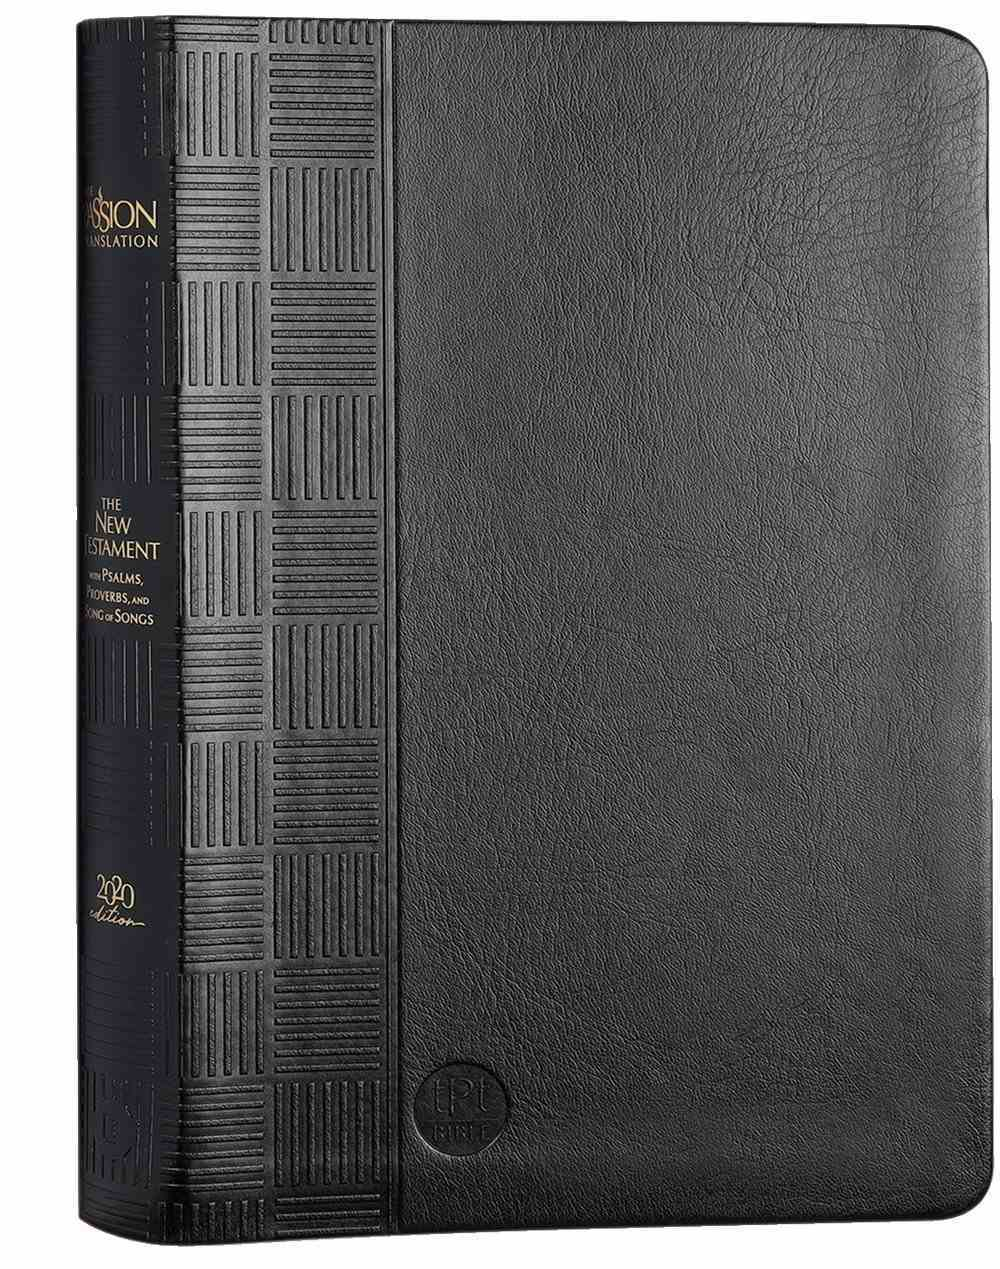 TPT New Testament Black (Black Letter Edition) (With Psalms, Proverbs And The Song Of Songs) Imitation Leather